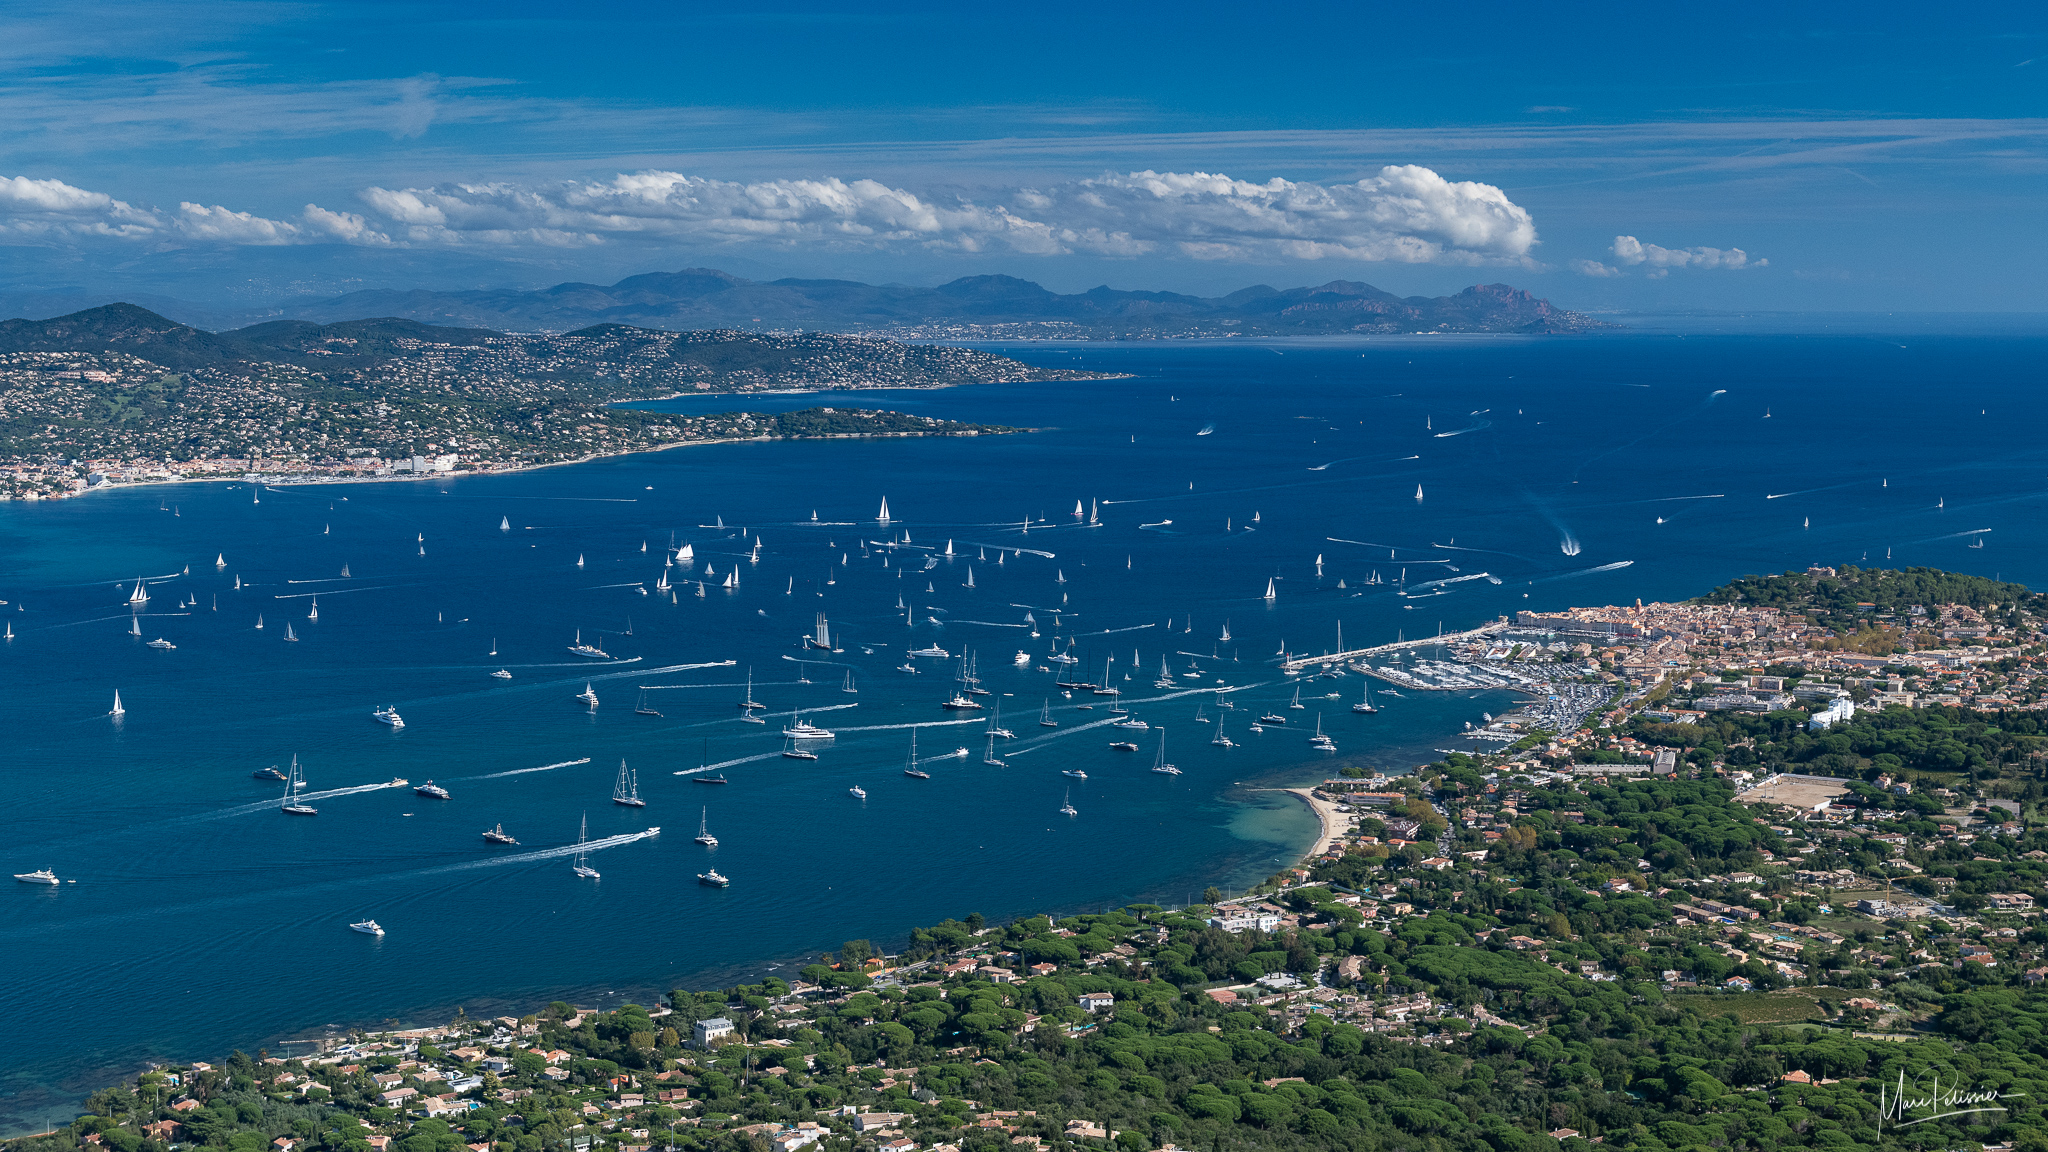 St tropez bay from above, France